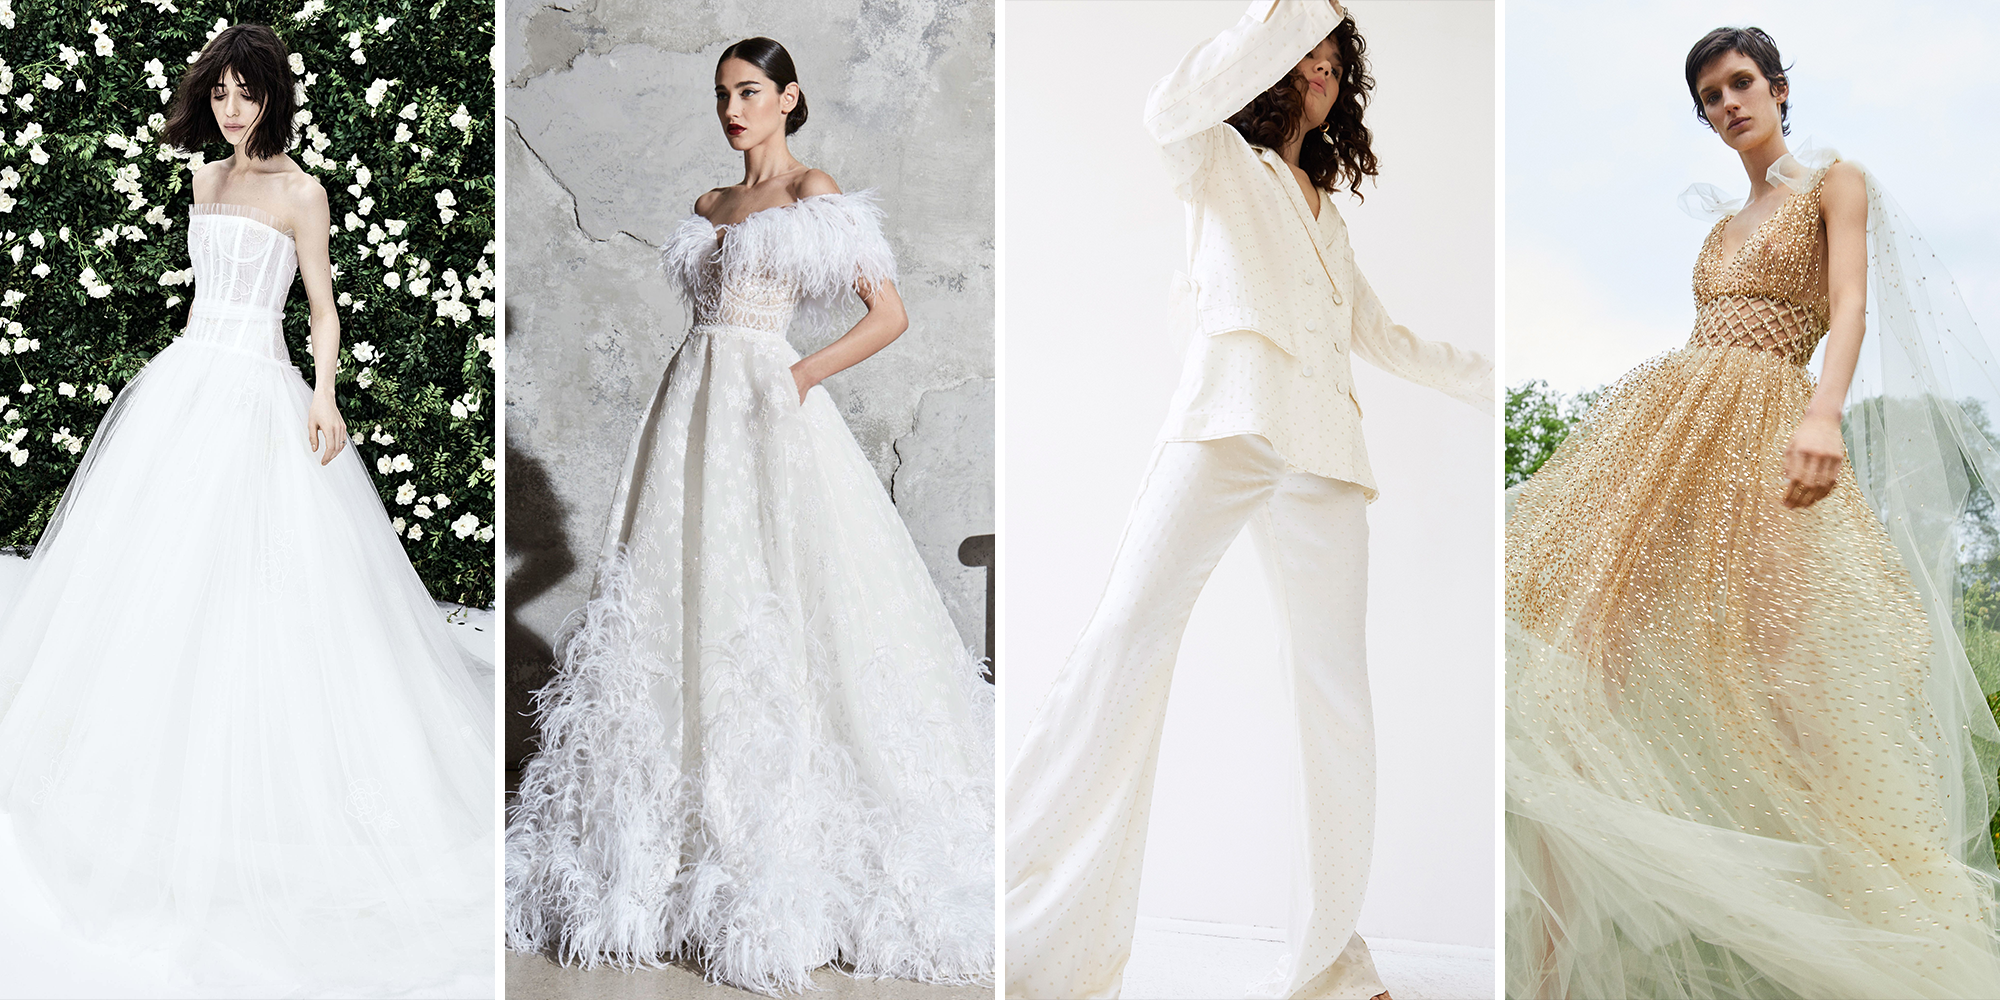 These Are the Top Bridal Trends for 2020 Weddings